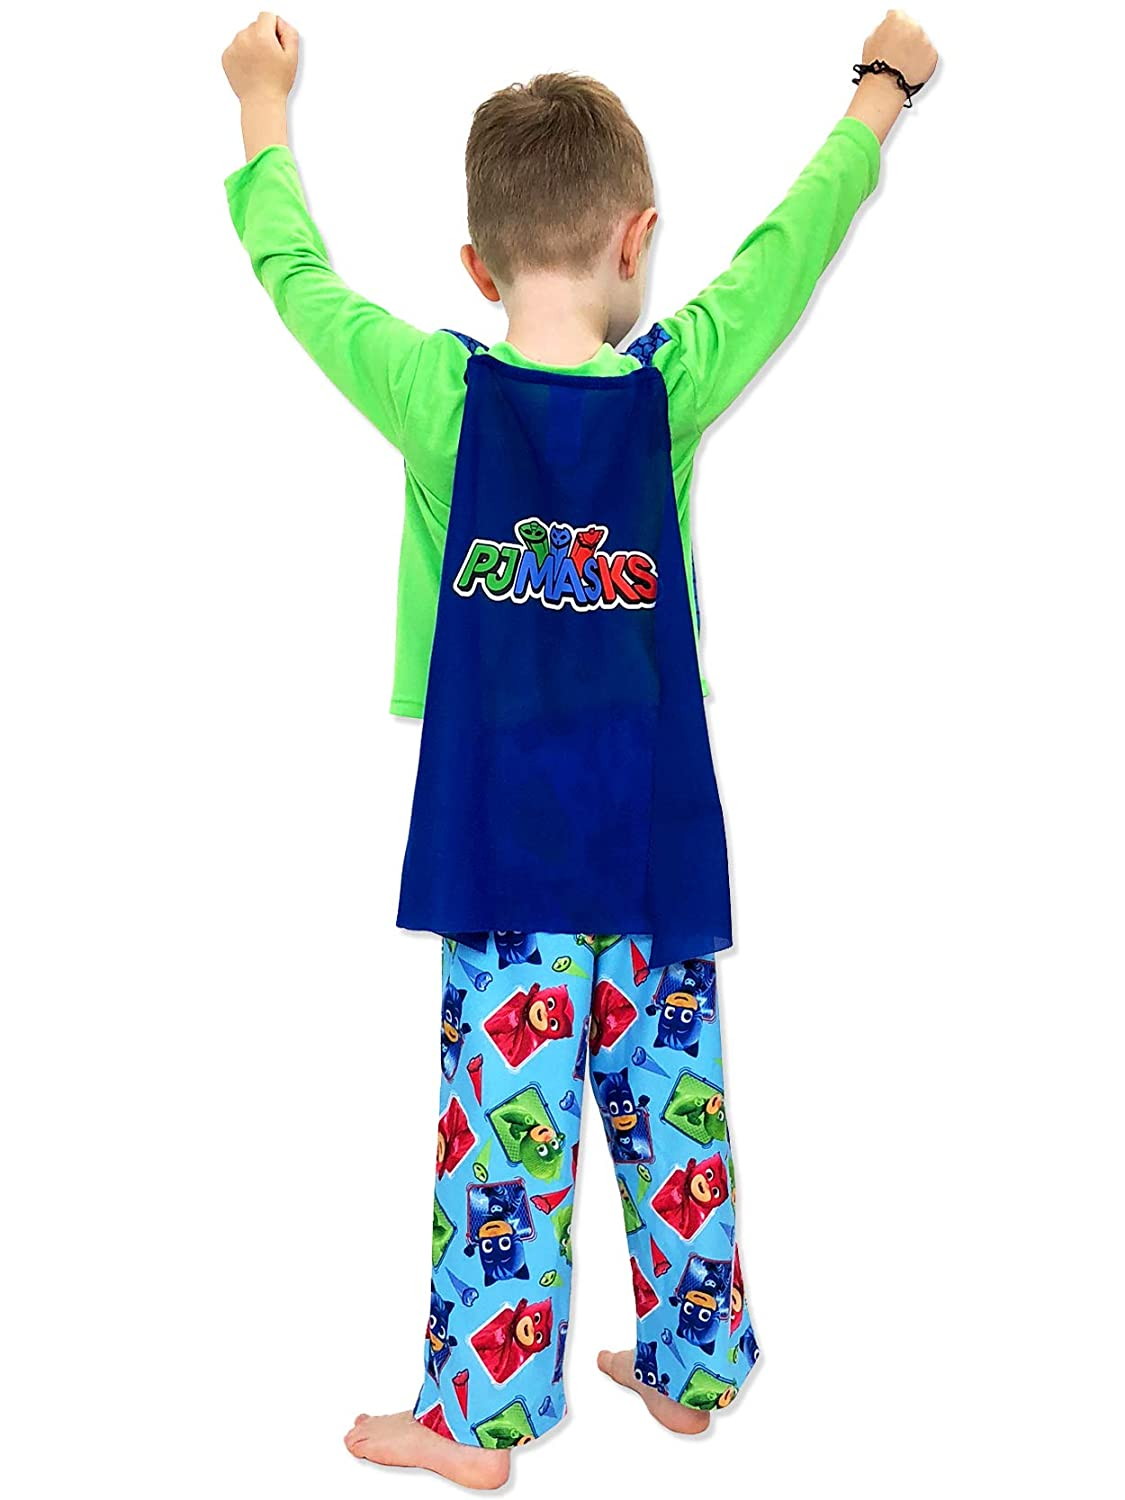 PJ Masks Toddler Boys Long Sleeve Pajamas with Cape manufacturer